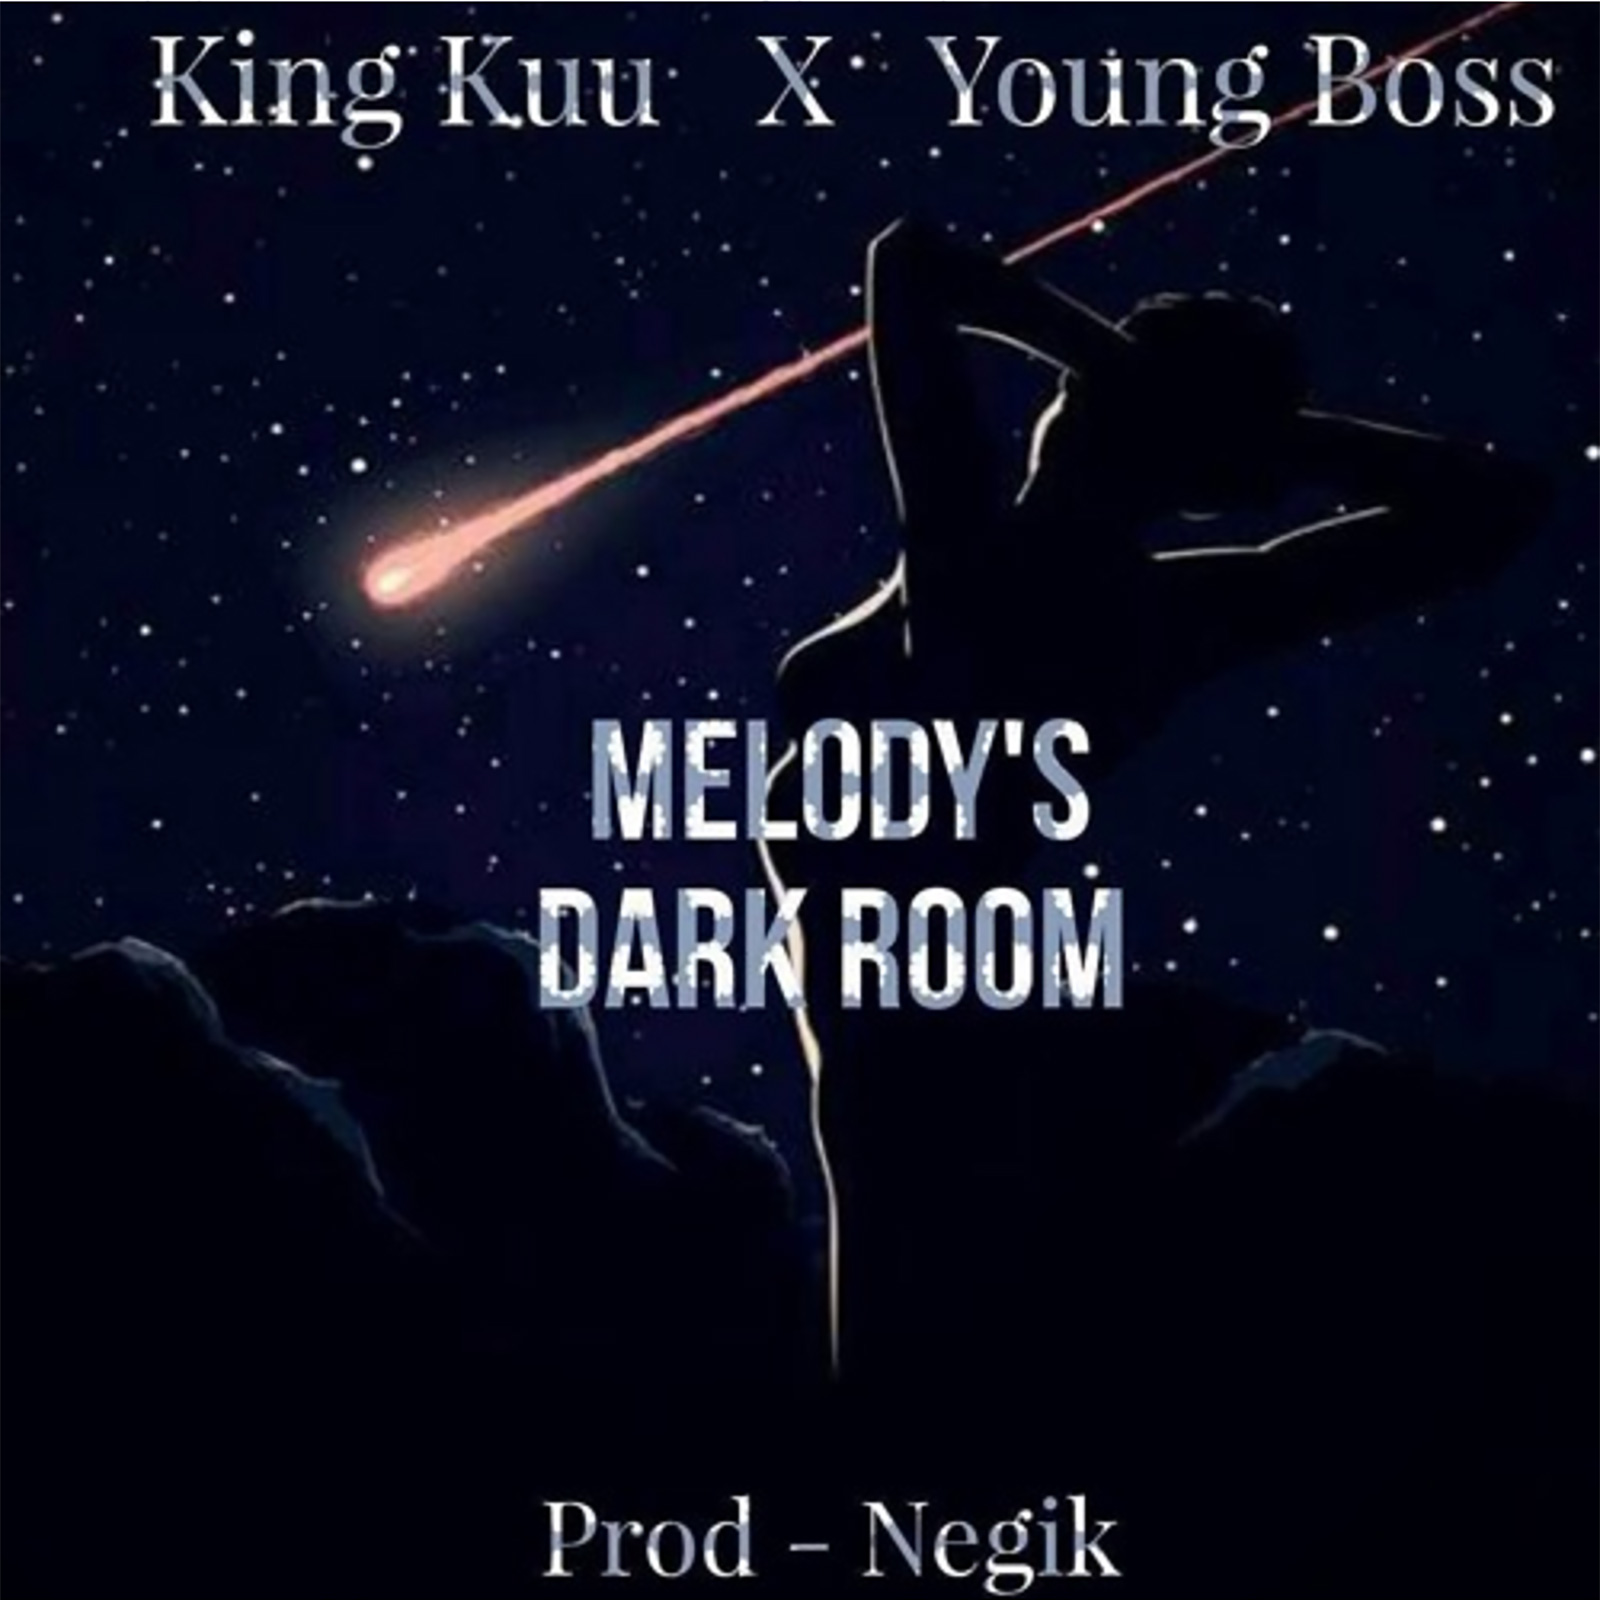 Melody's Dark Room by King Kuu feat. Young Boss